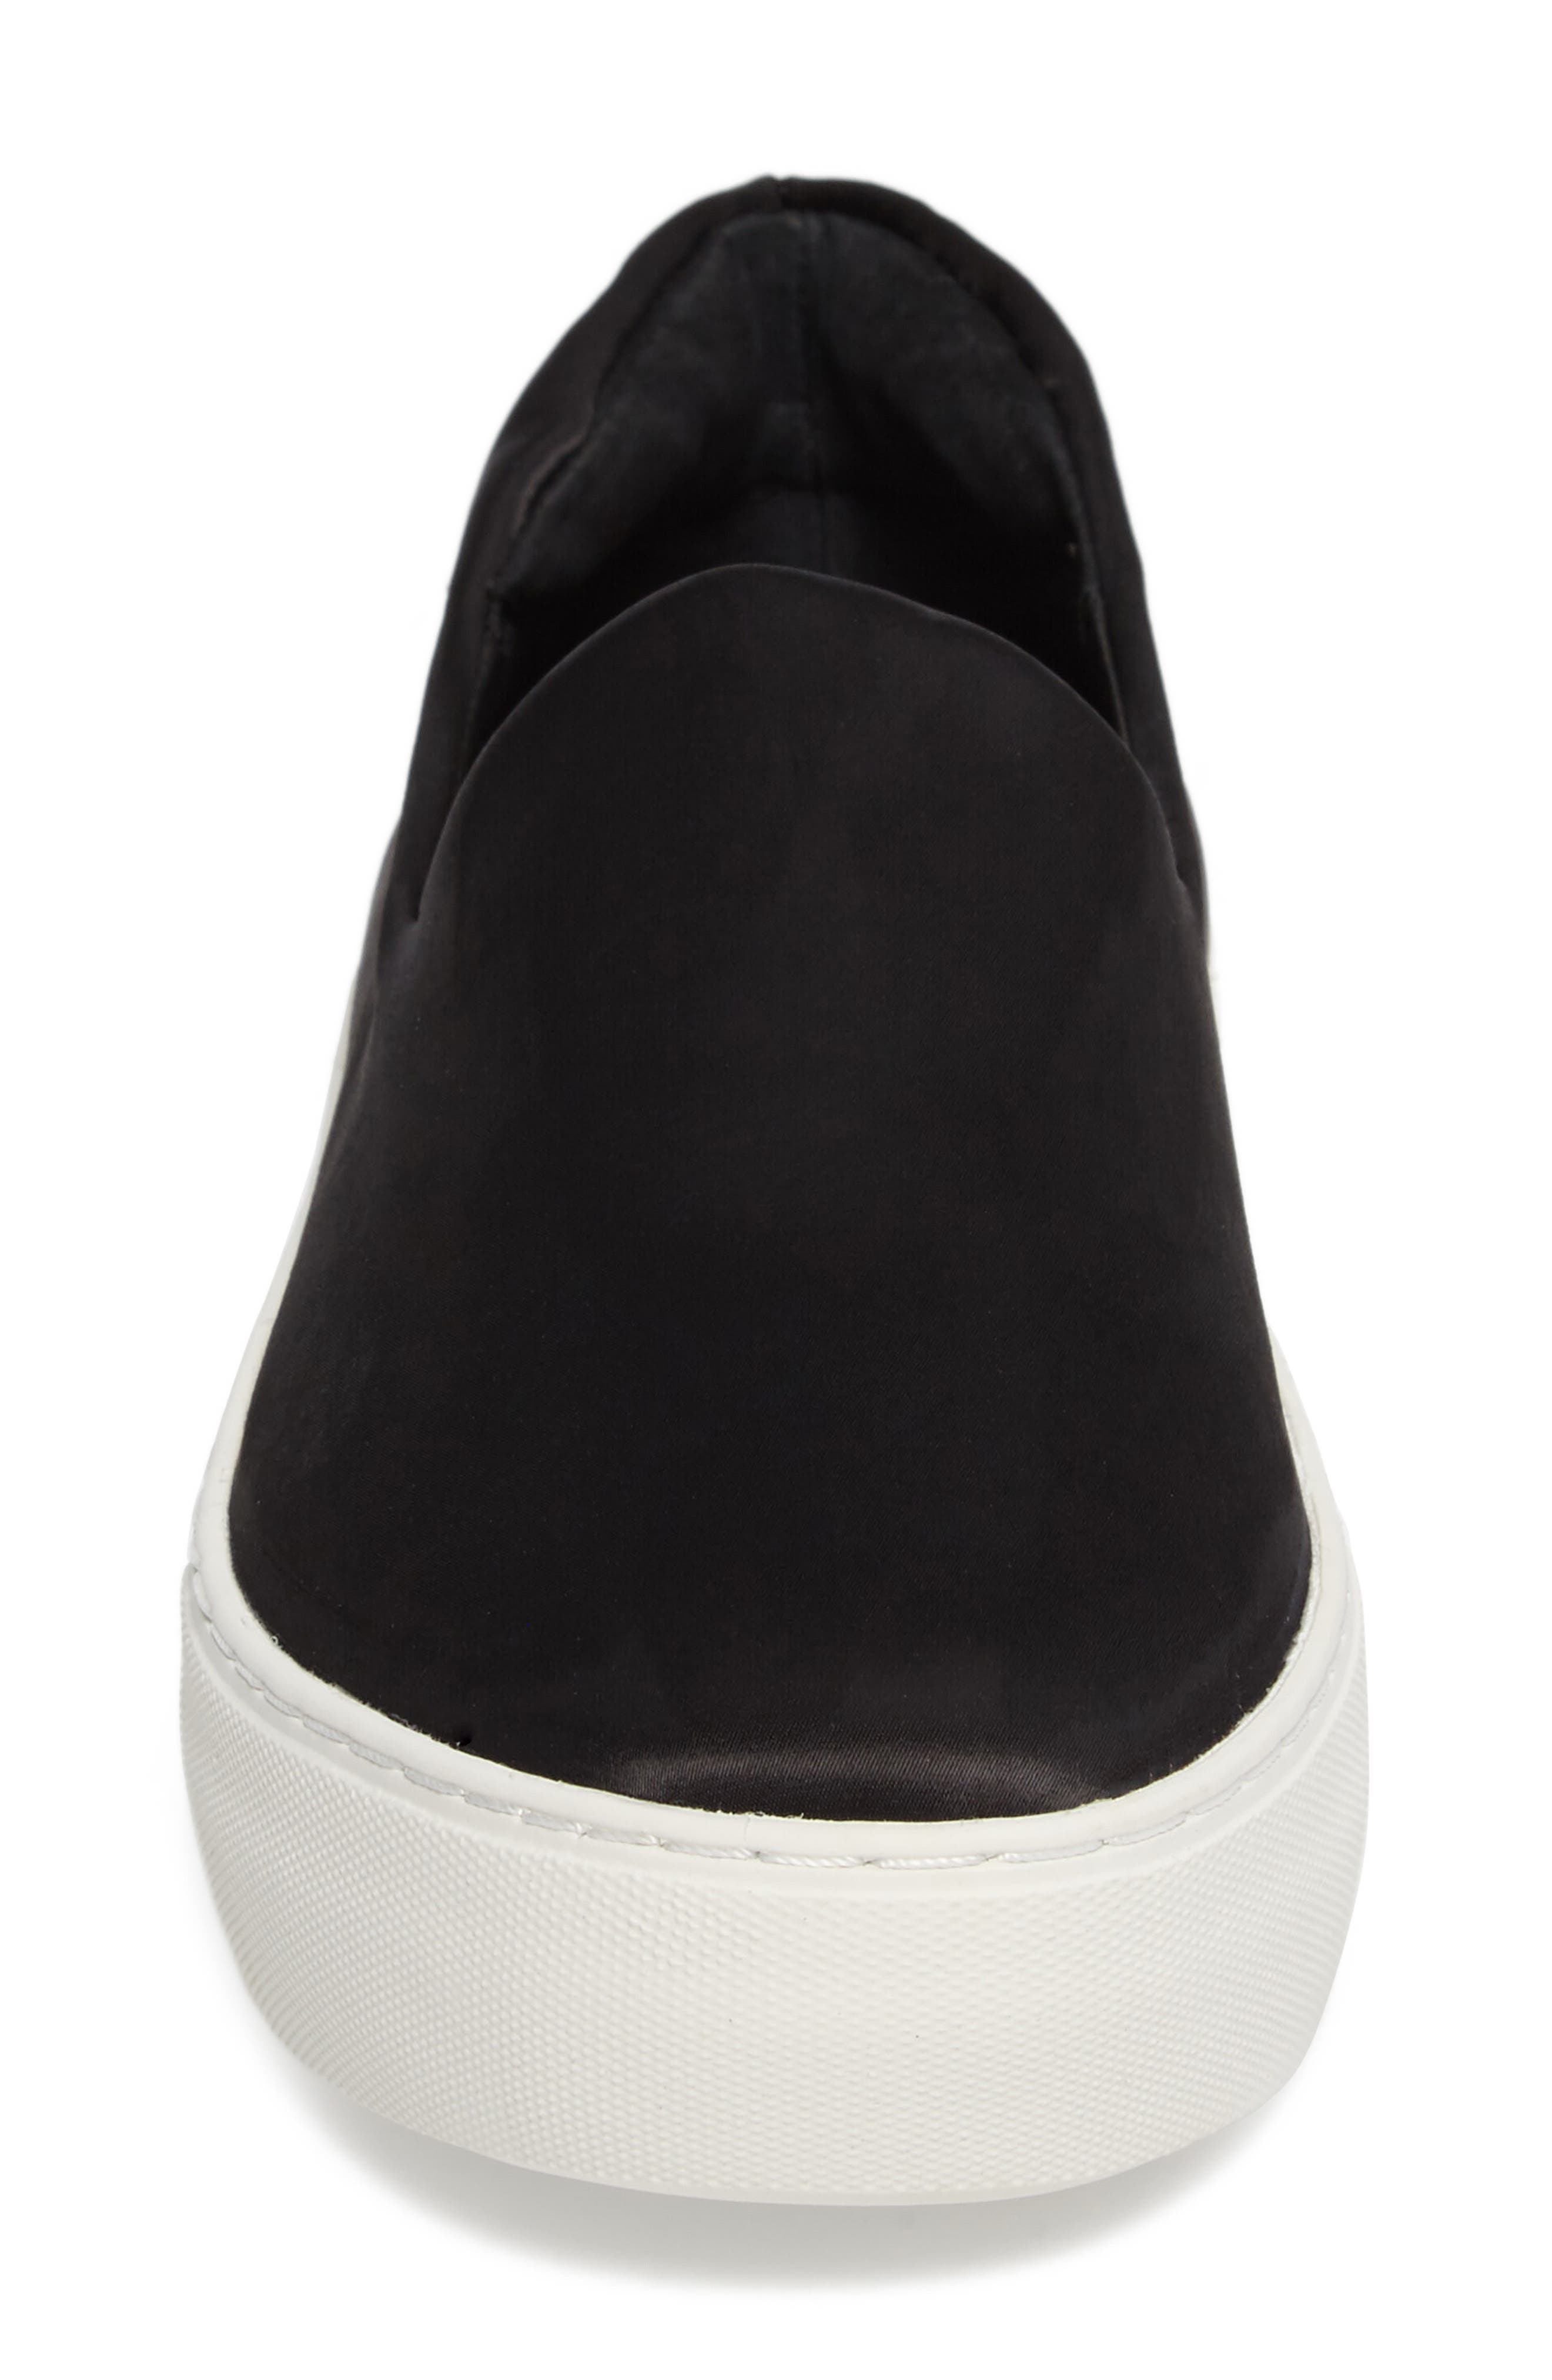 Abba Slip-On Platform Sneaker,                             Alternate thumbnail 4, color,                             001